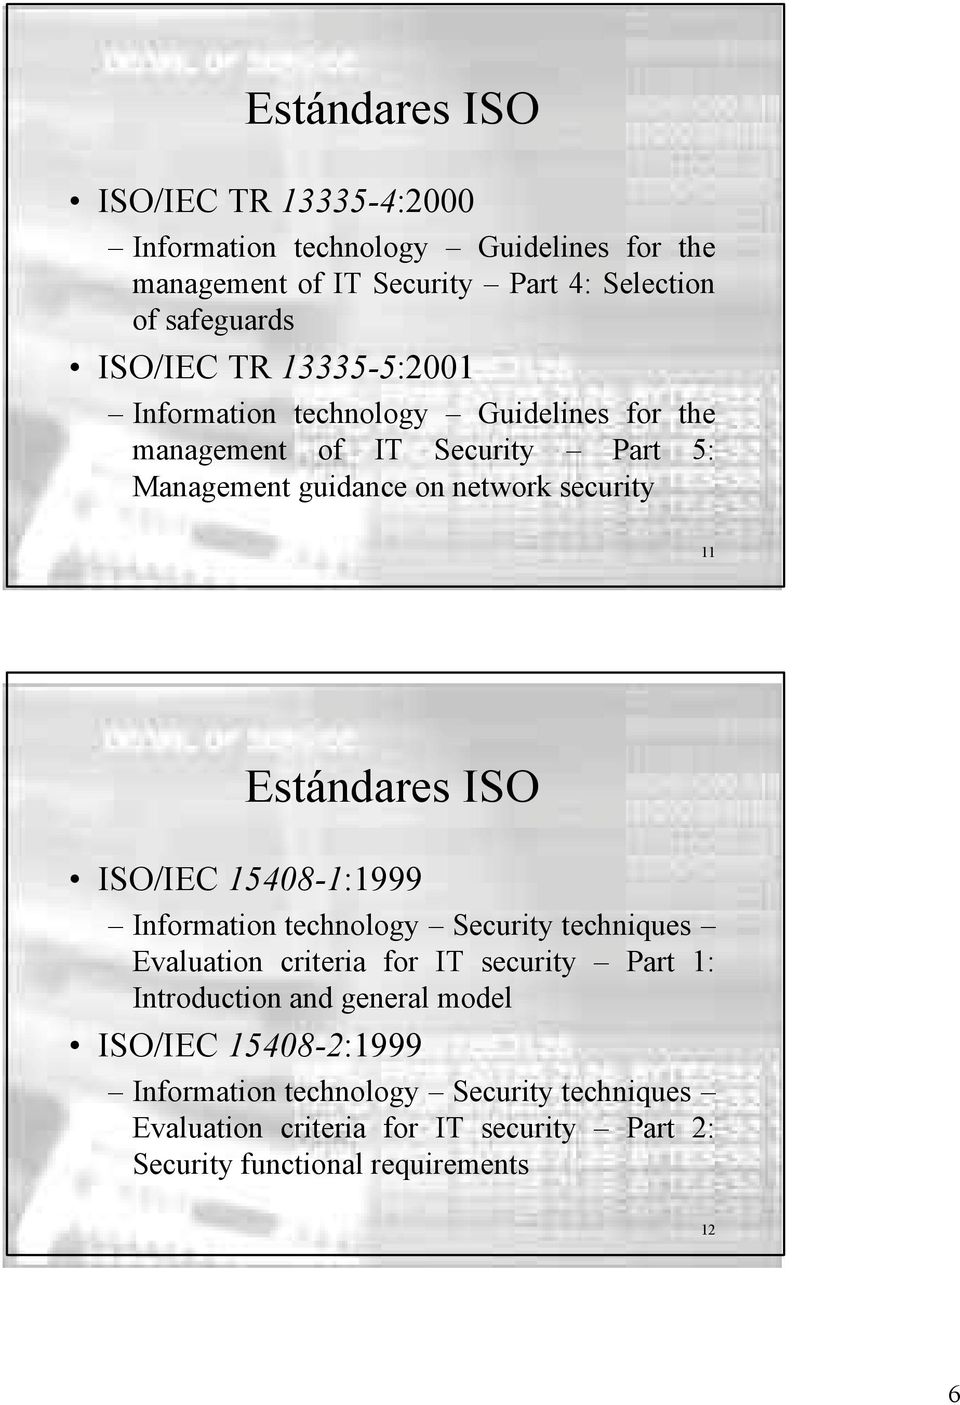 Estándares ISO ISO/IEC 15408-1:1999 Information technology Security techniques Evaluation criteria for IT security Part 1: Introduction and